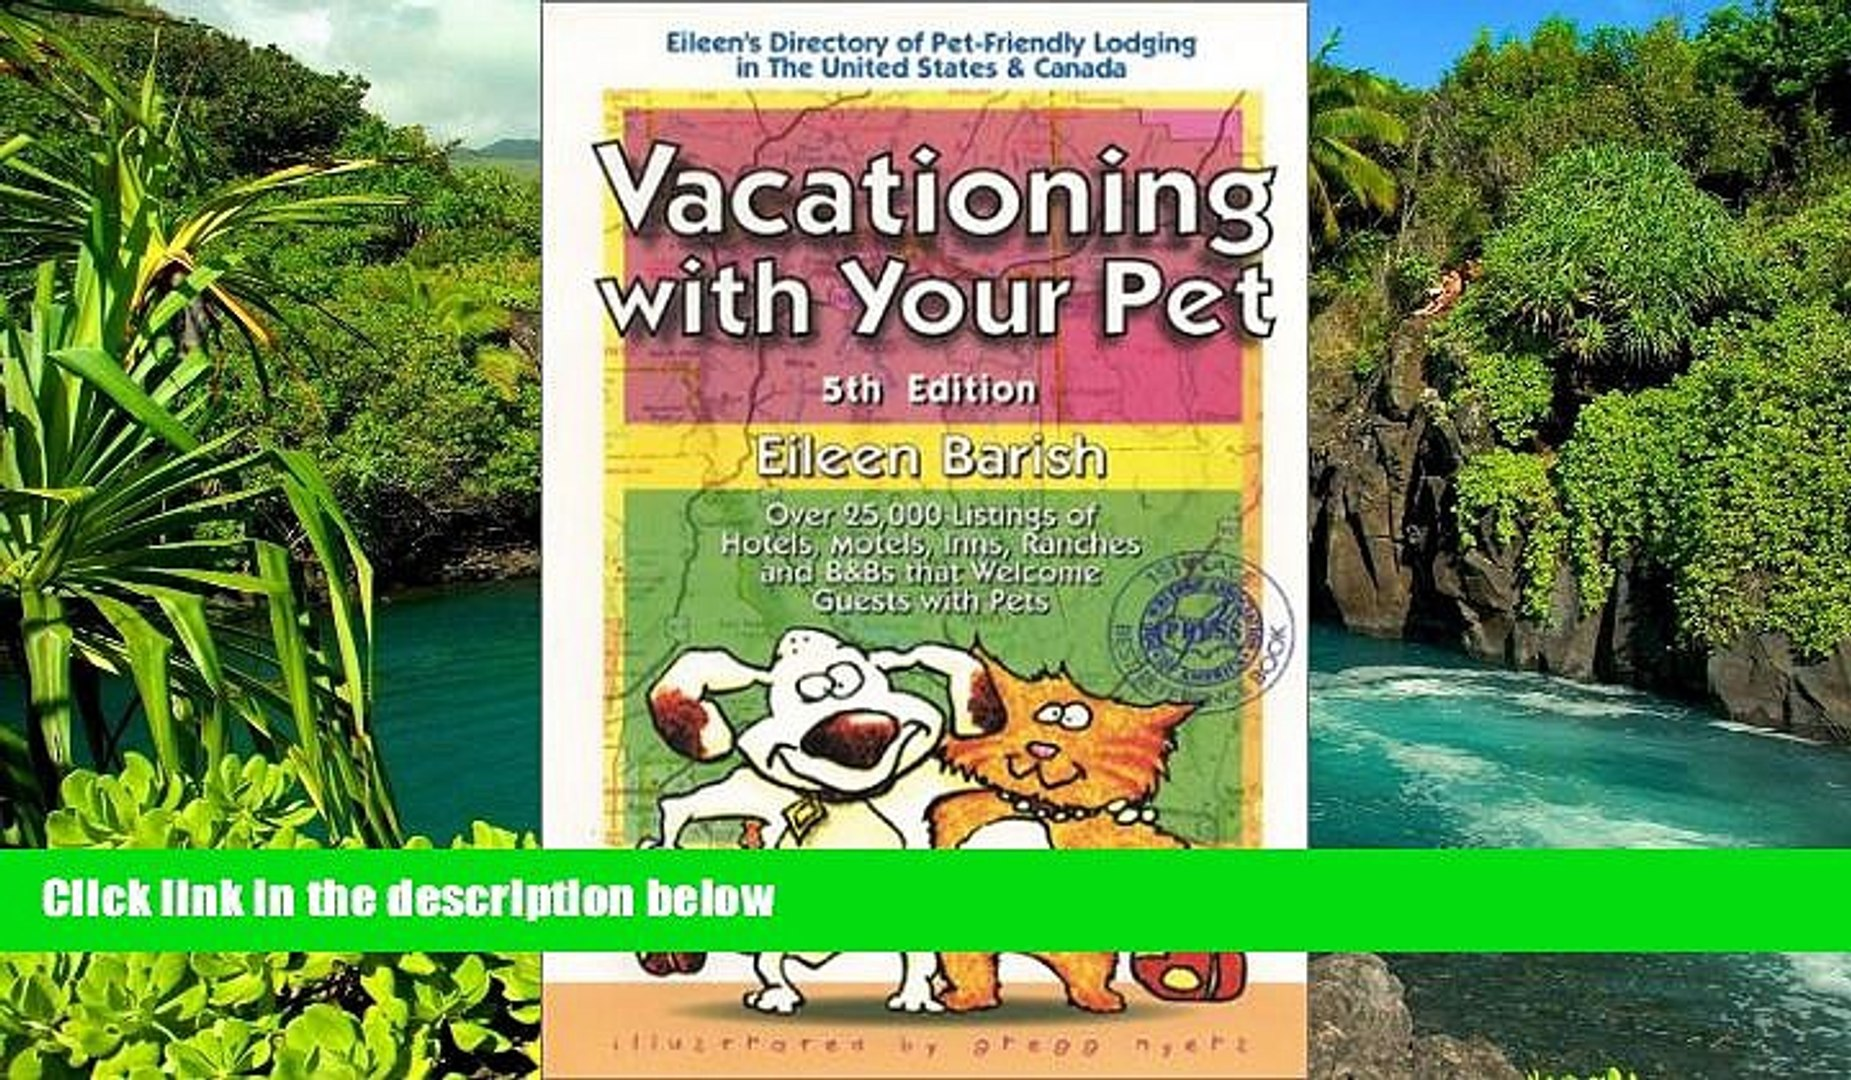 READ FULL  Vacationing With Your Pet: Eileen s Directory of Pet-Friendly Lodging in the United